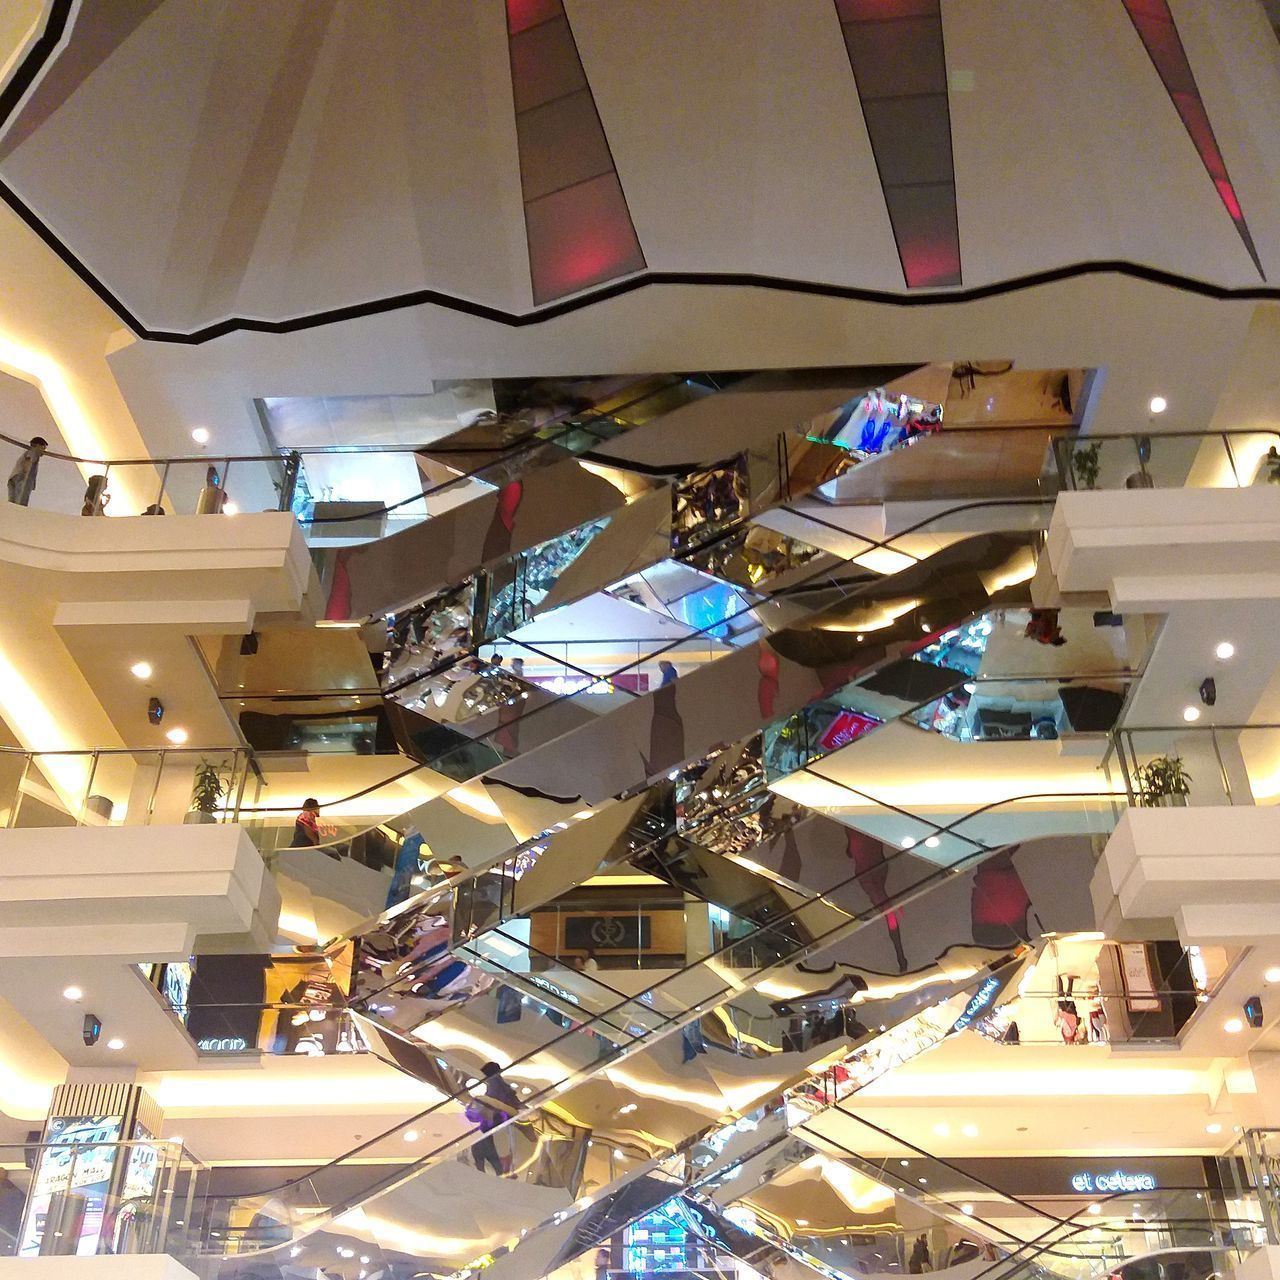 LOW ANGLE VIEW OF ILLUMINATED PENDANT LIGHT IN SHOPPING MALL